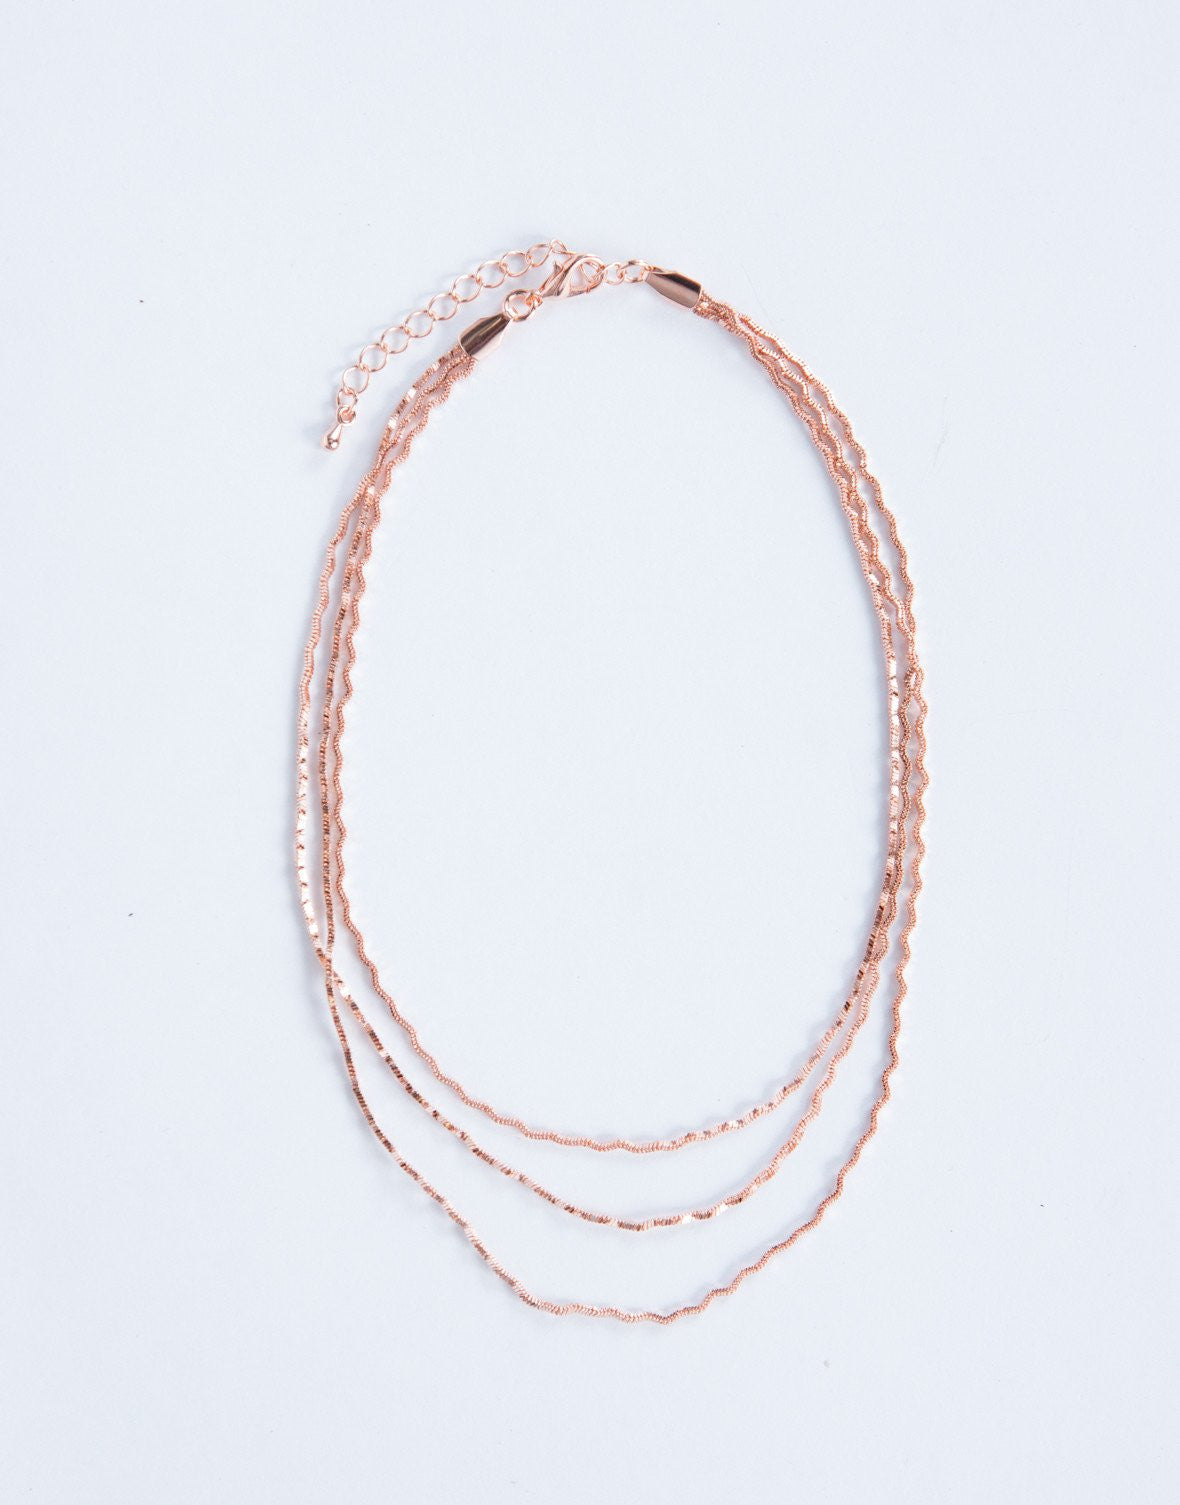 Rose Gold Sparkly Waves Choker - Front View